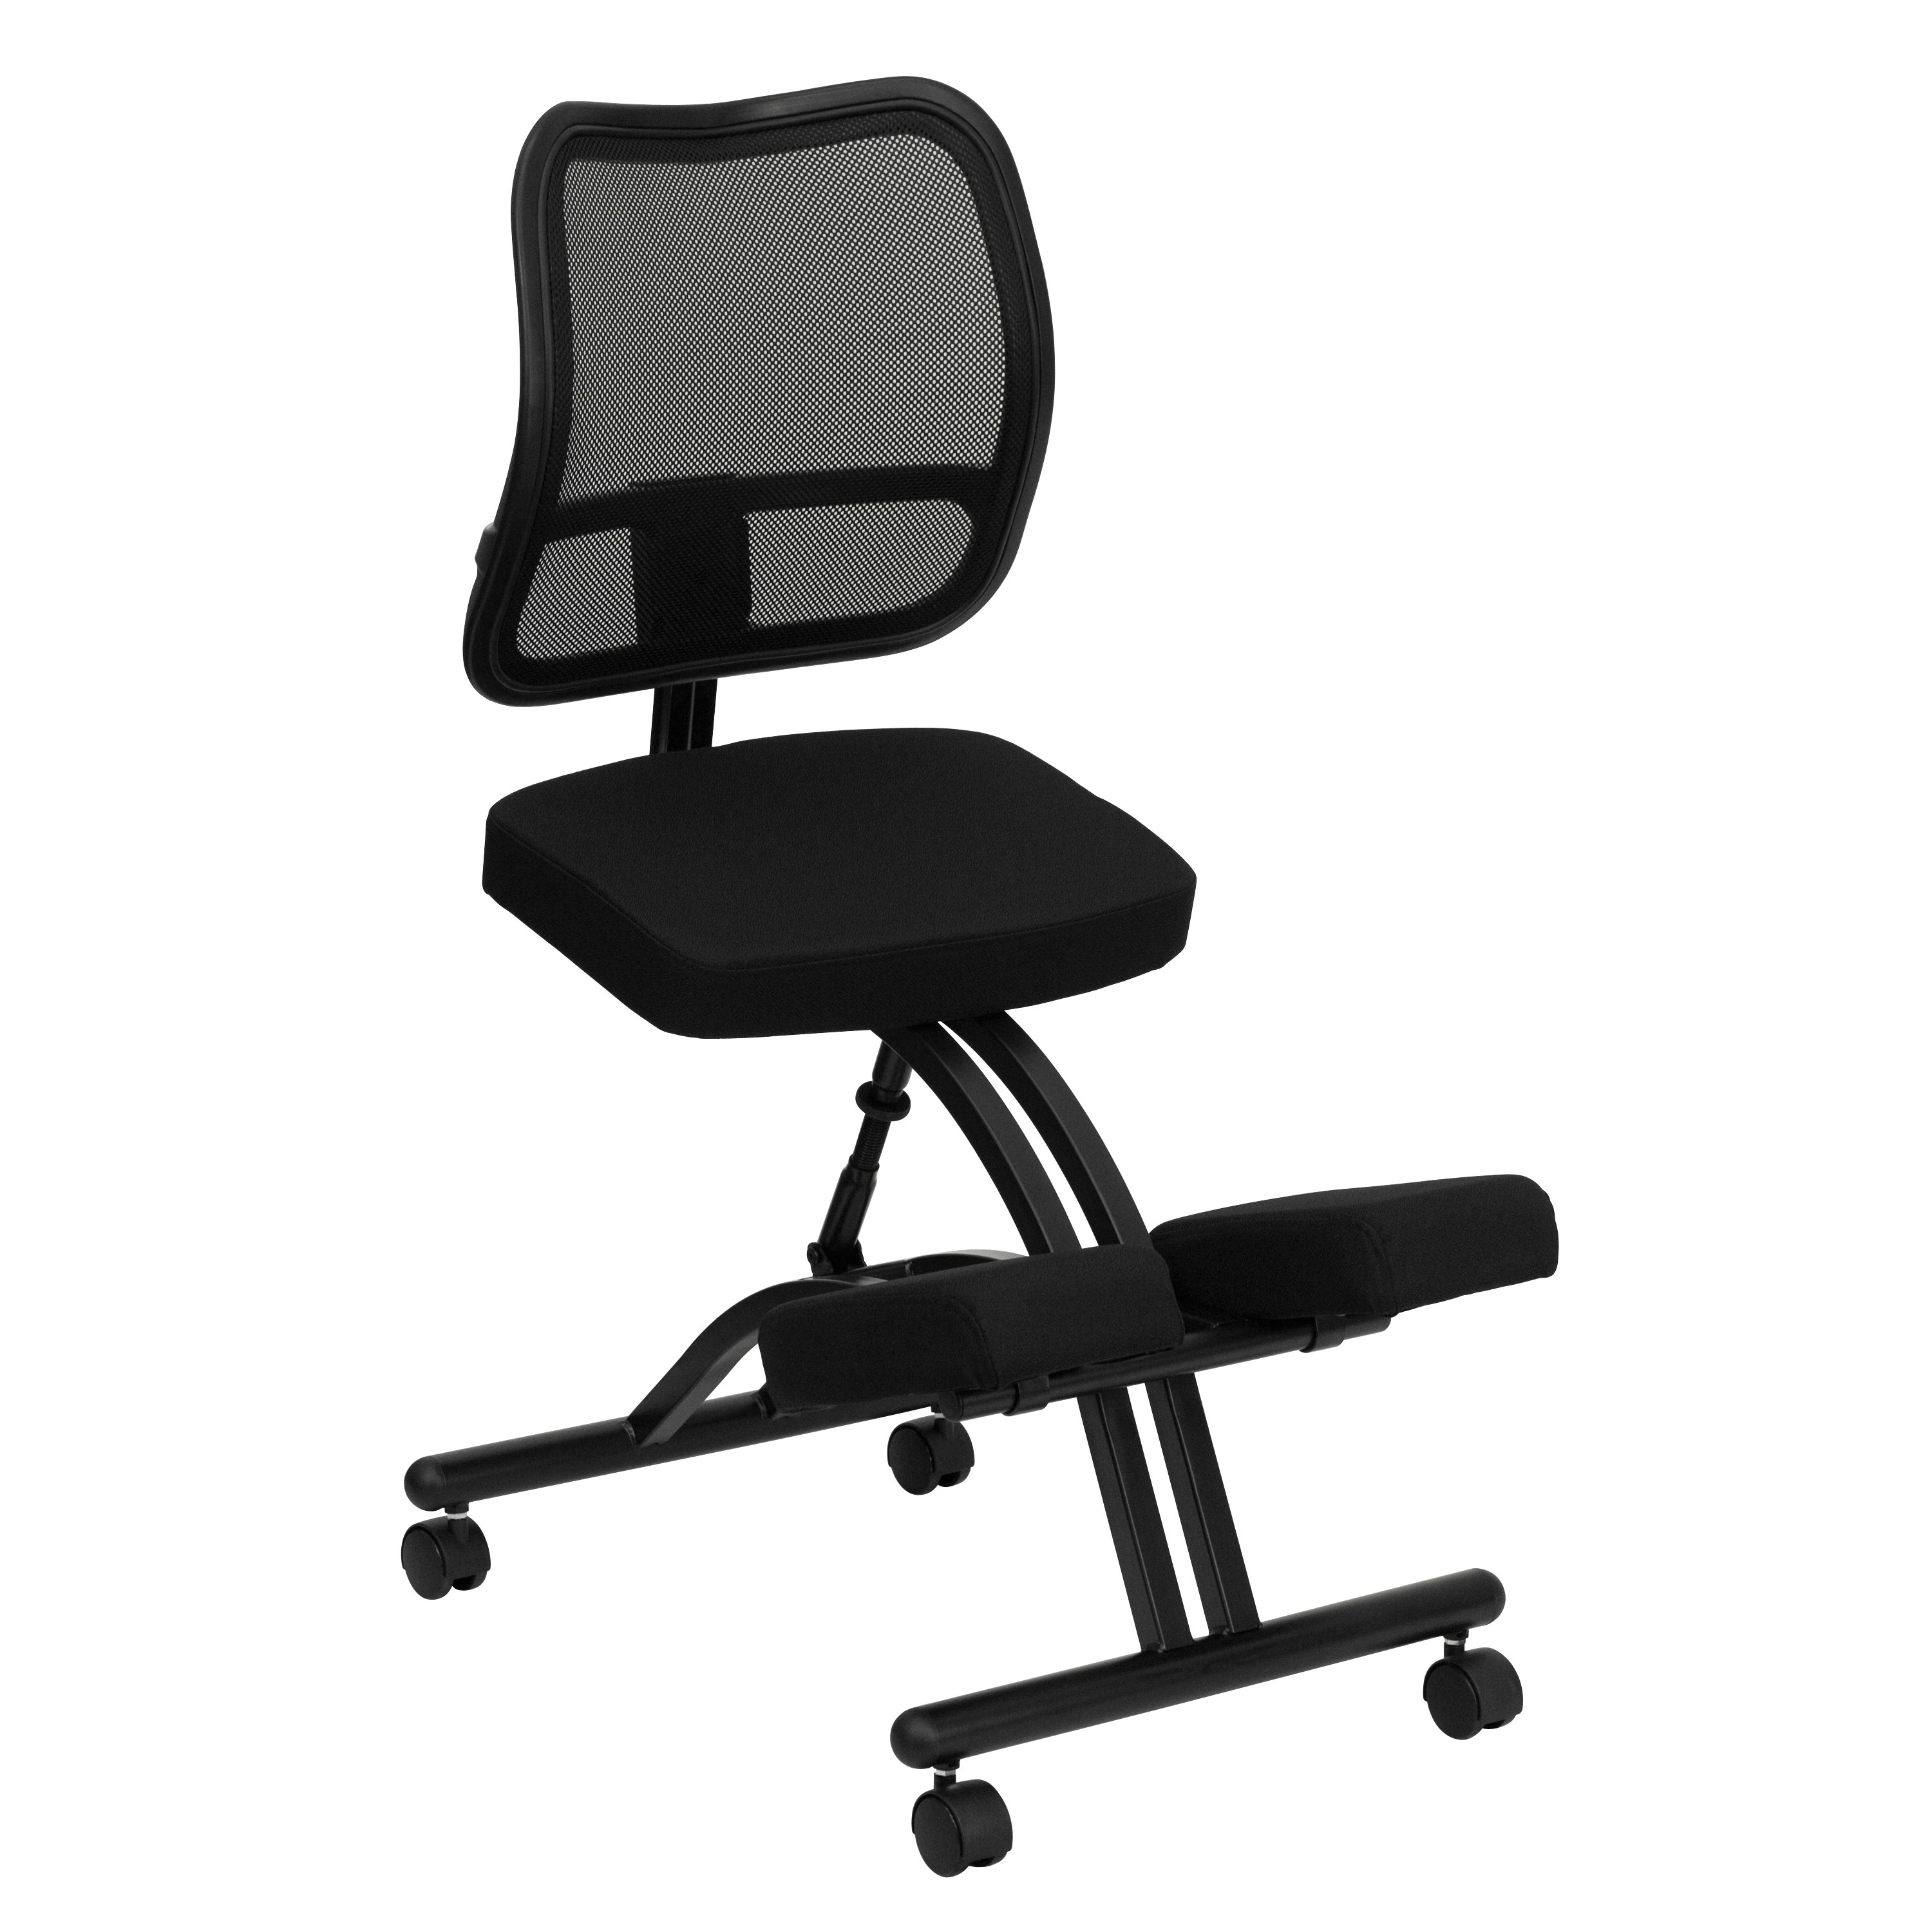 ergonomic chair kneeling review vinyl rocking chairs mobile with black curved mesh back and fabric seat jpg